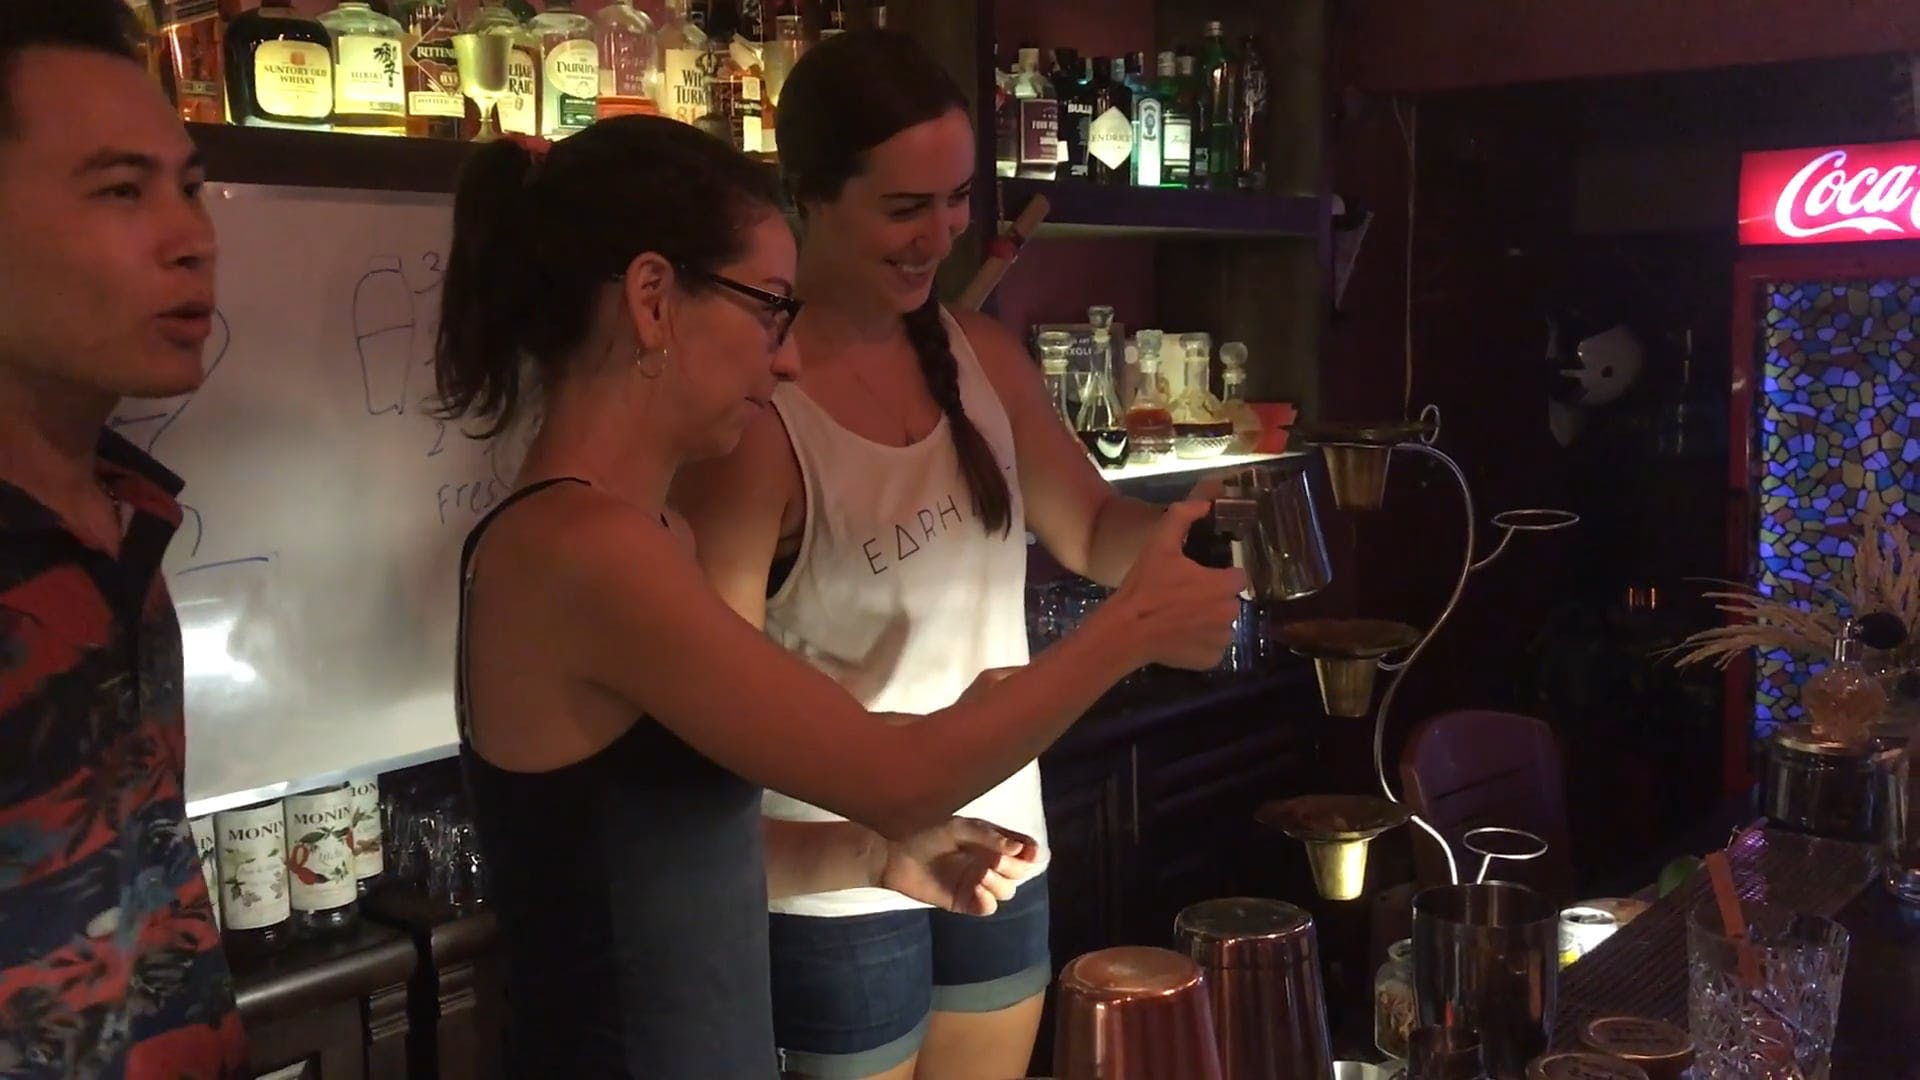 Women Pouring Drinks